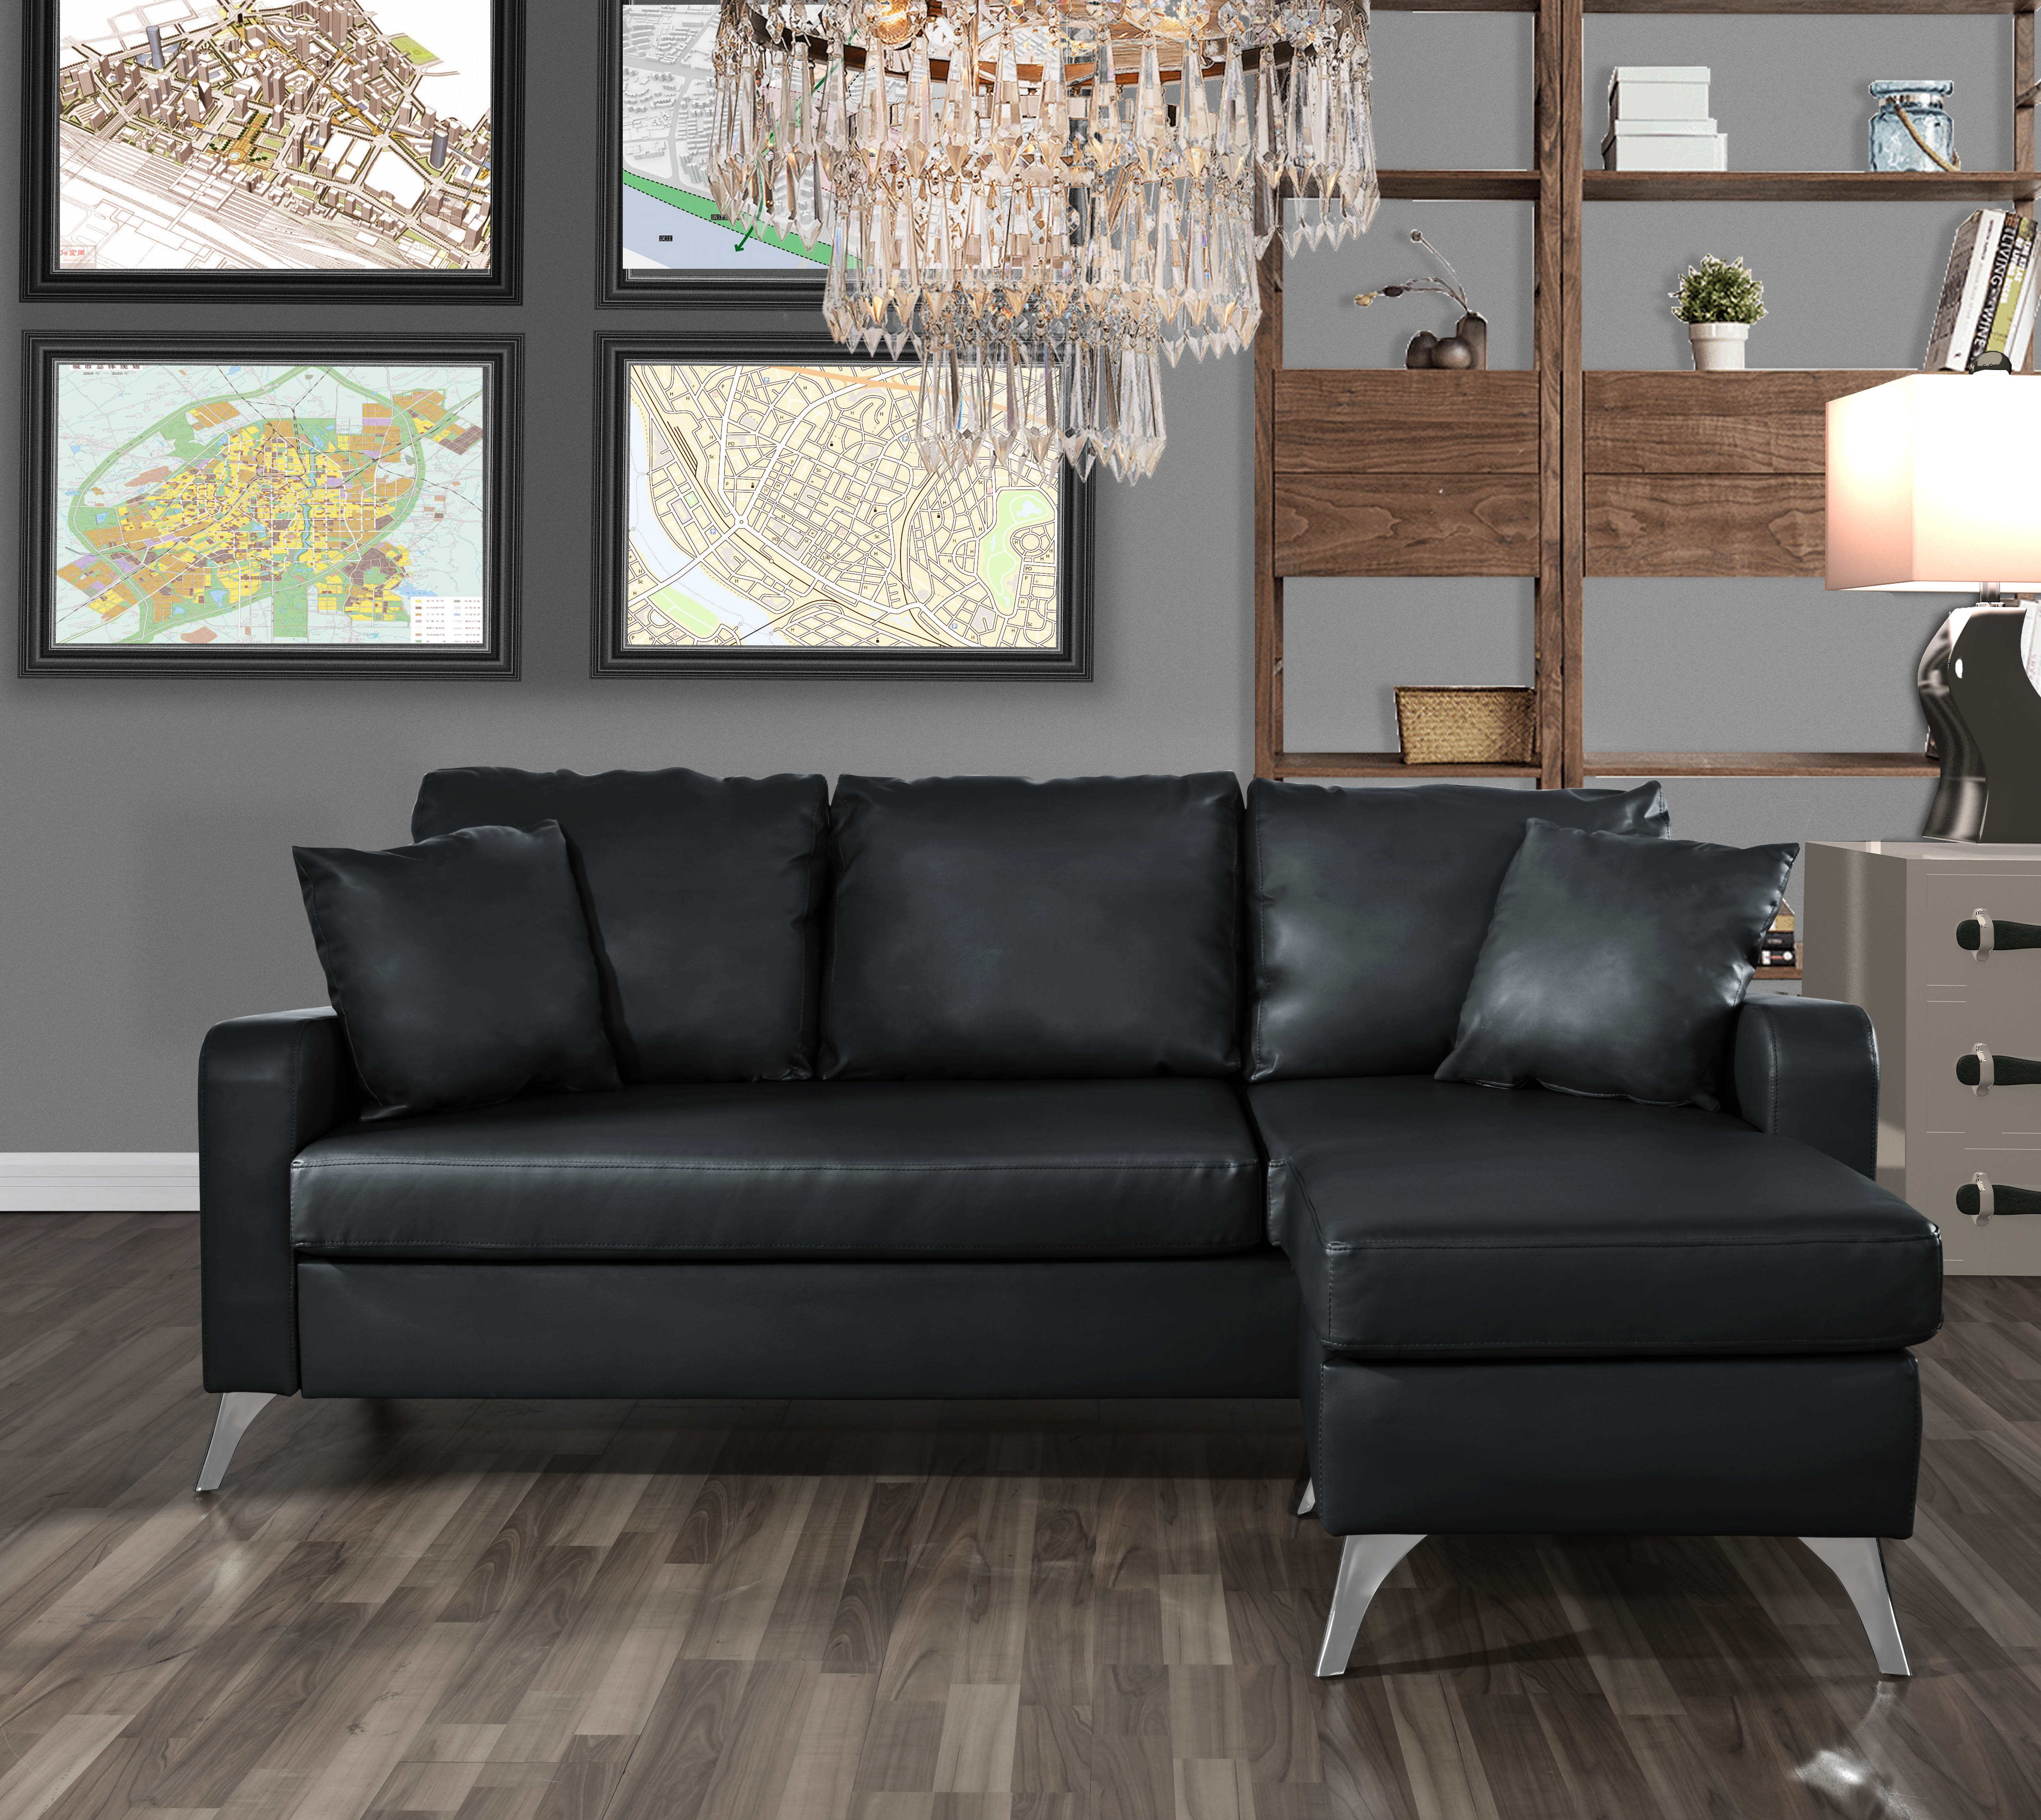 mobilis bonded leather sectional sofa small space configurable couch black